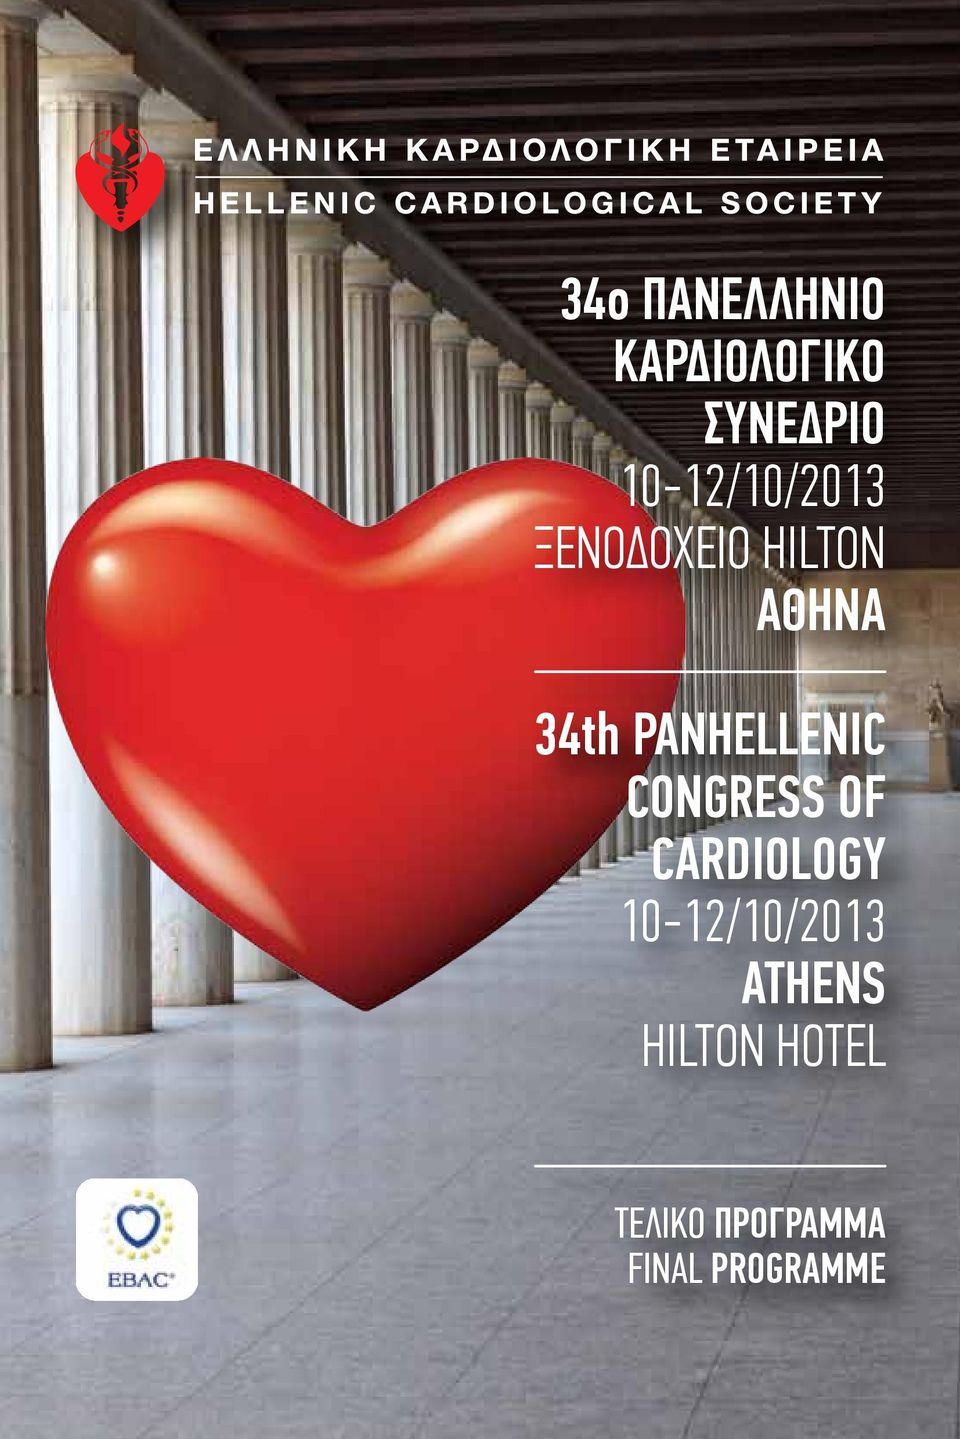 PANHELLENIC CONGRESS OF CARDIOLOGY